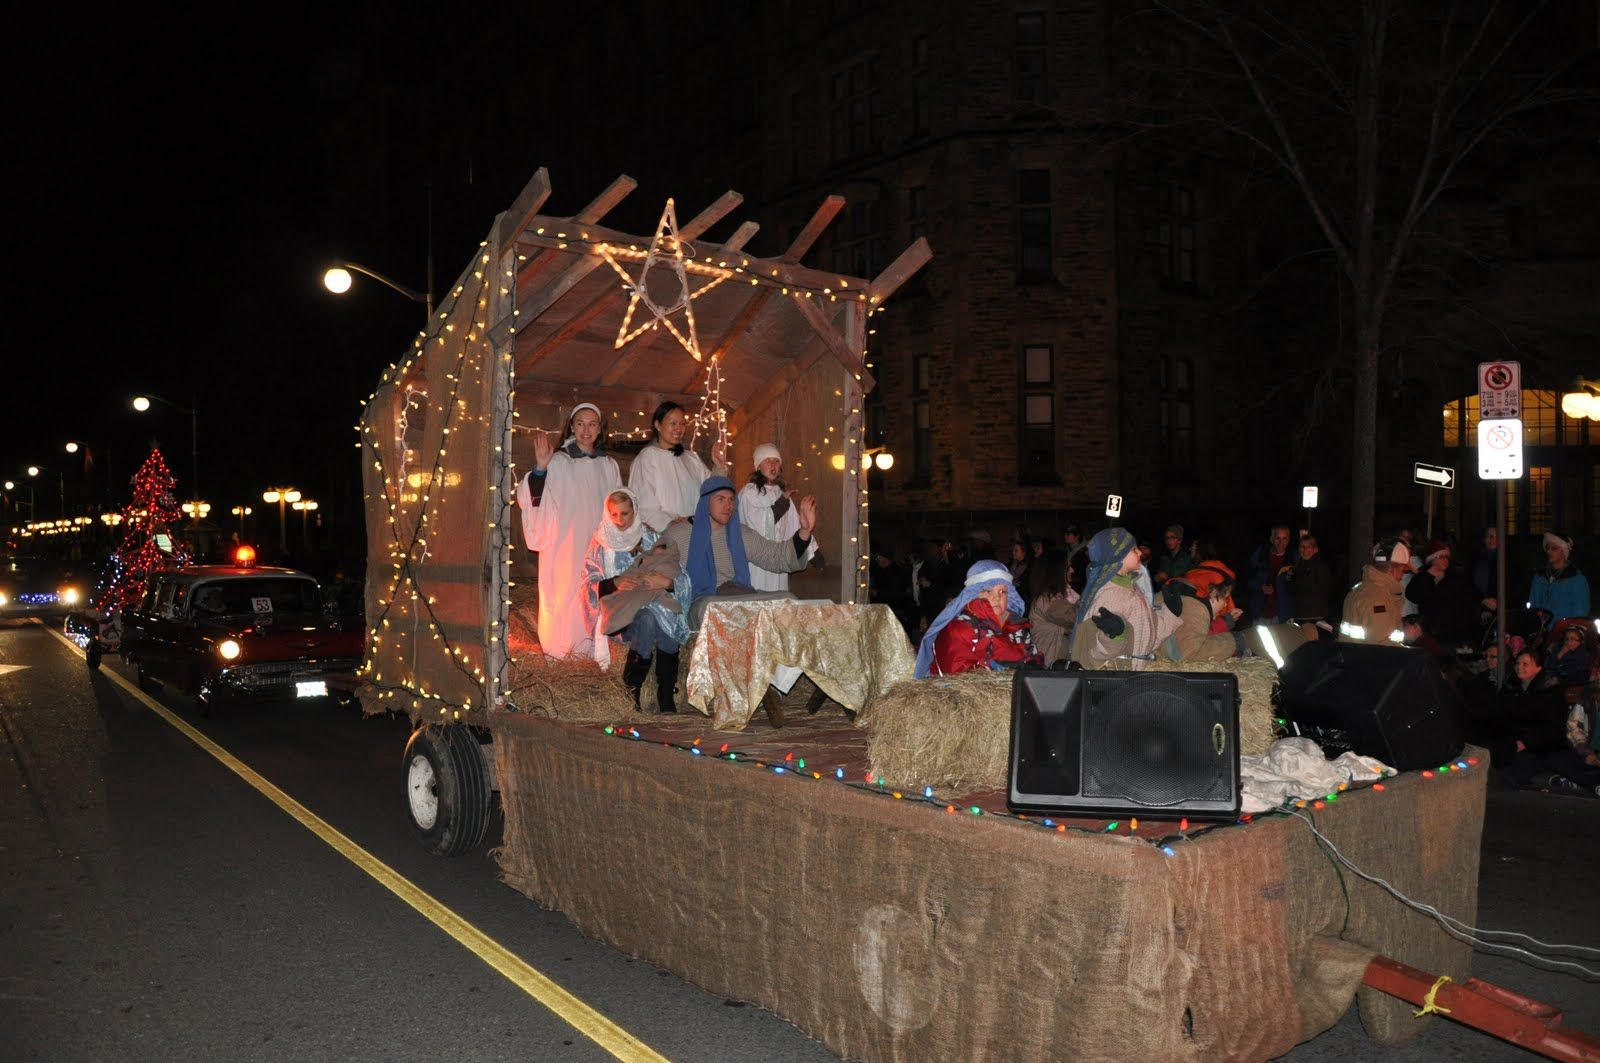 Christmas festival ideas for church - Church christmas floats get involved too many holiday parades these days no